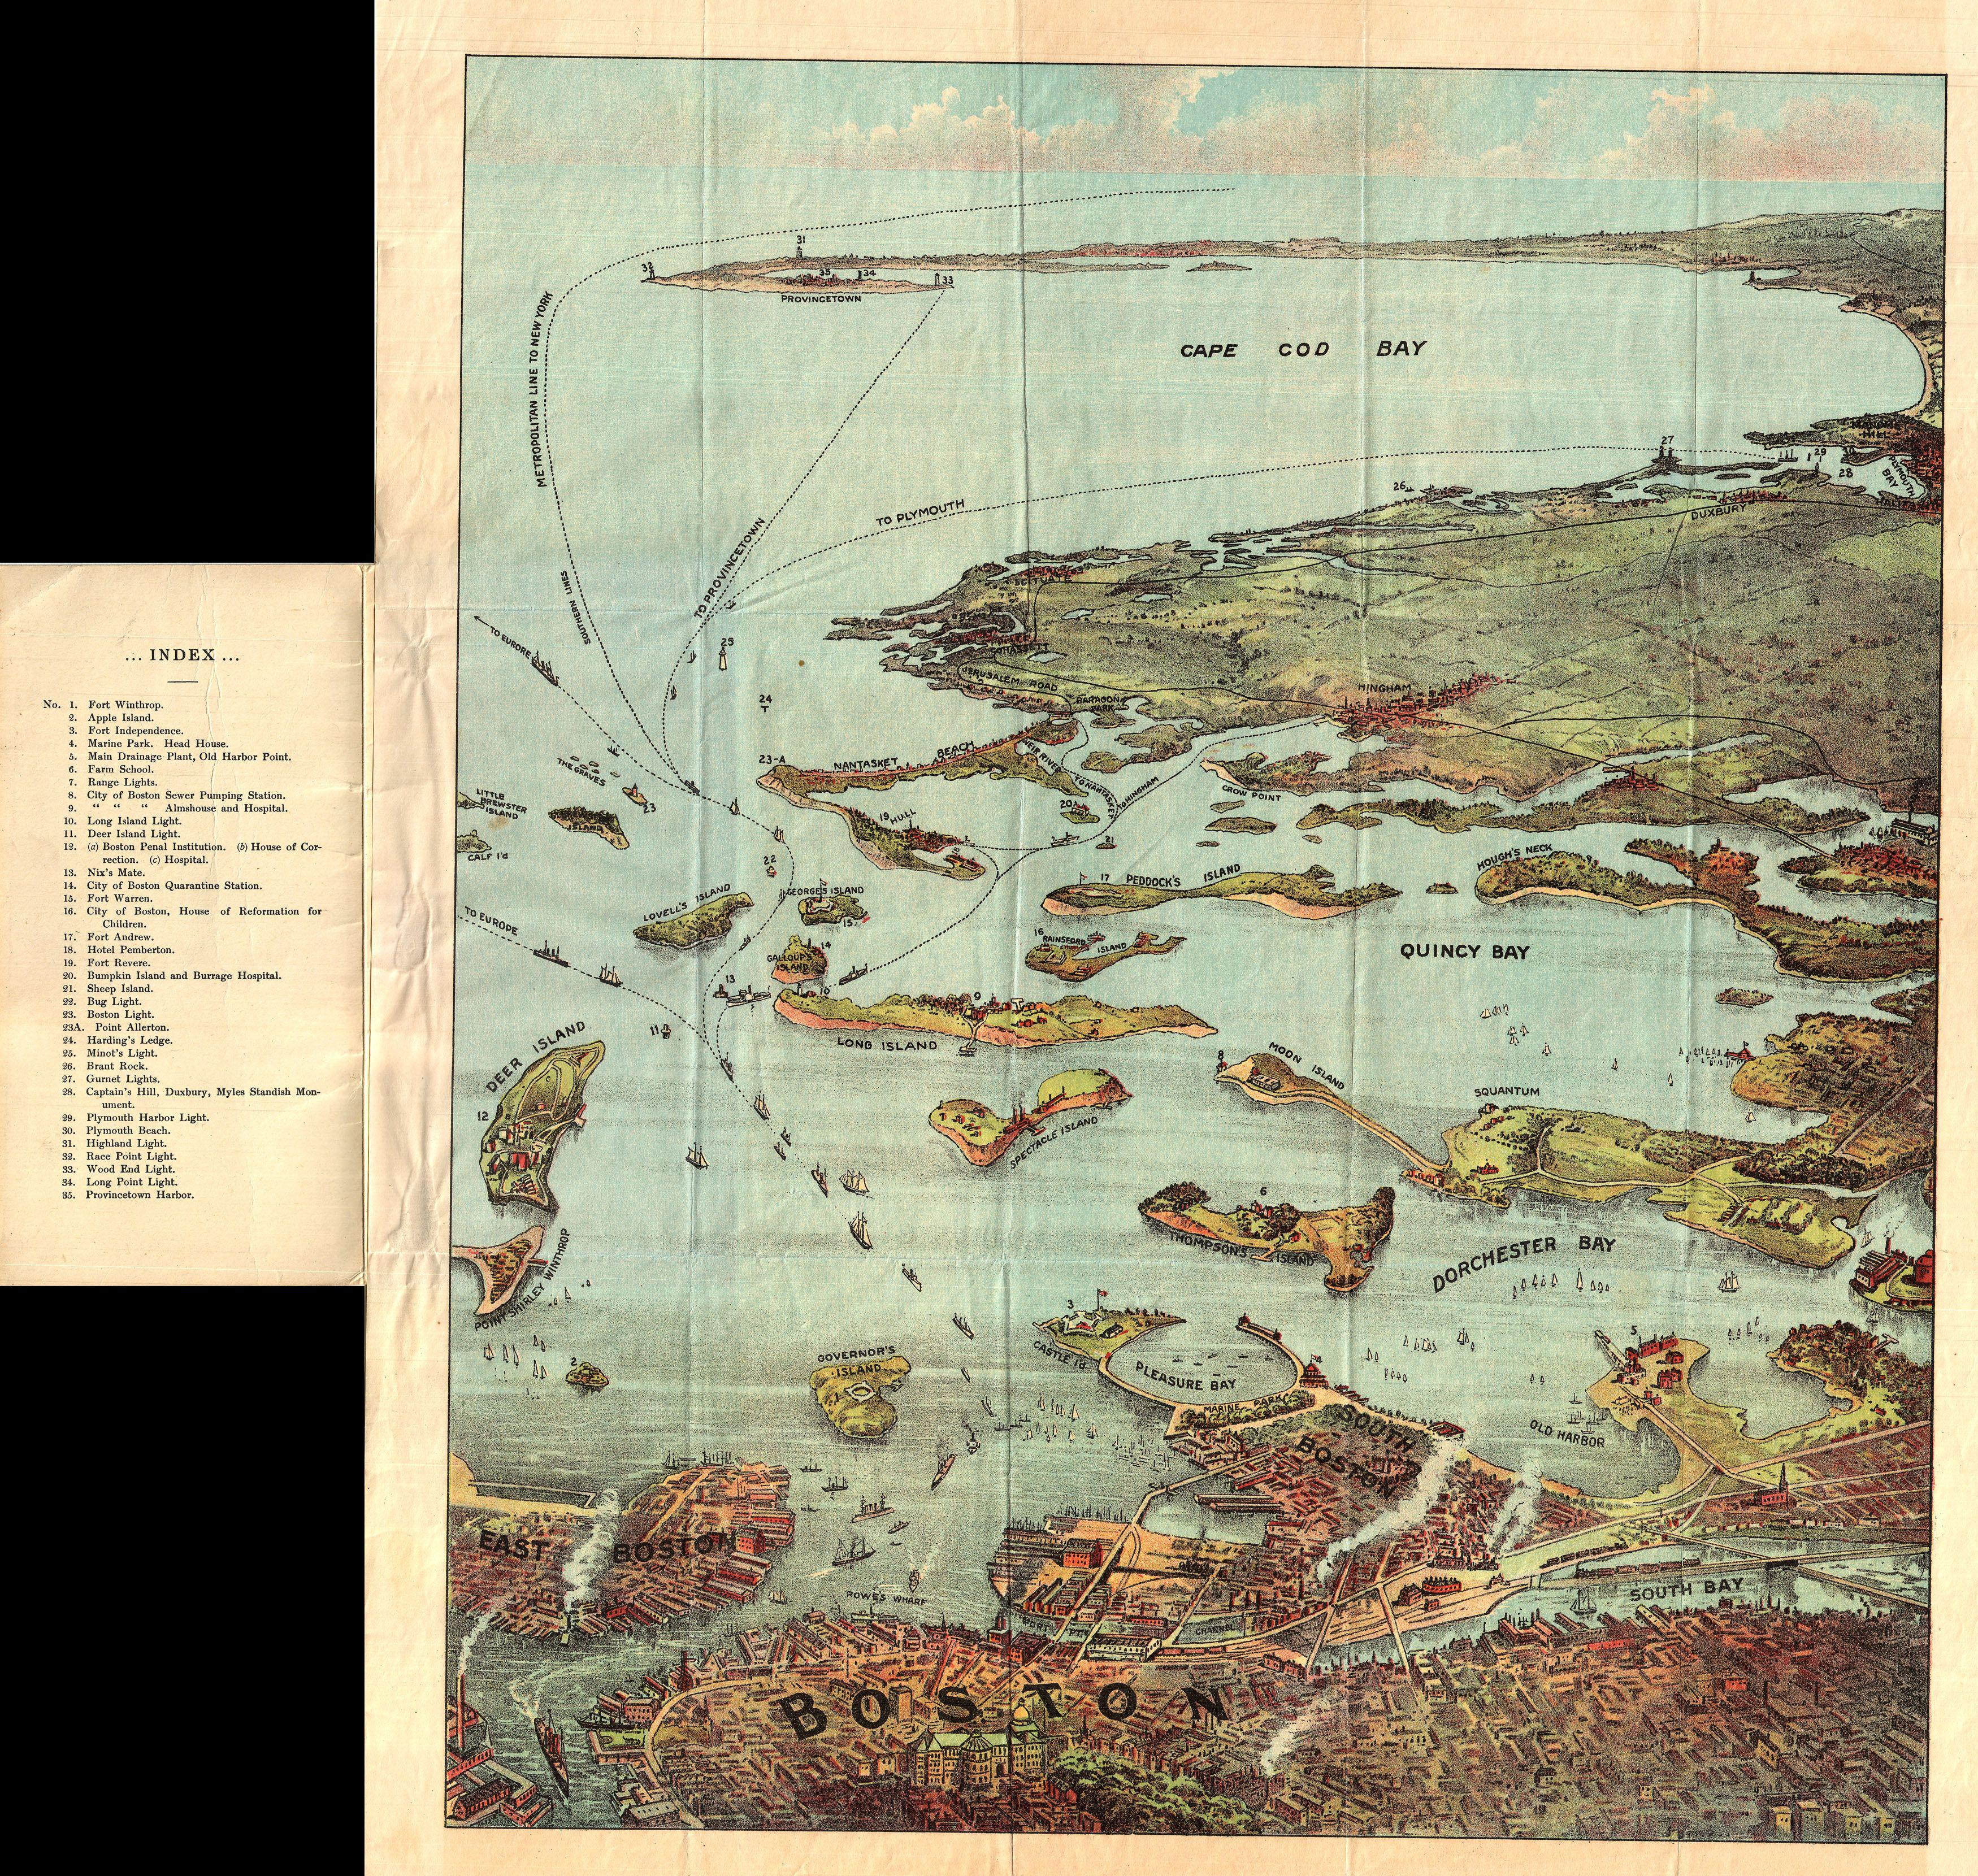 File:1890 View Map Of Boston Habor From Boston To Cape Cod